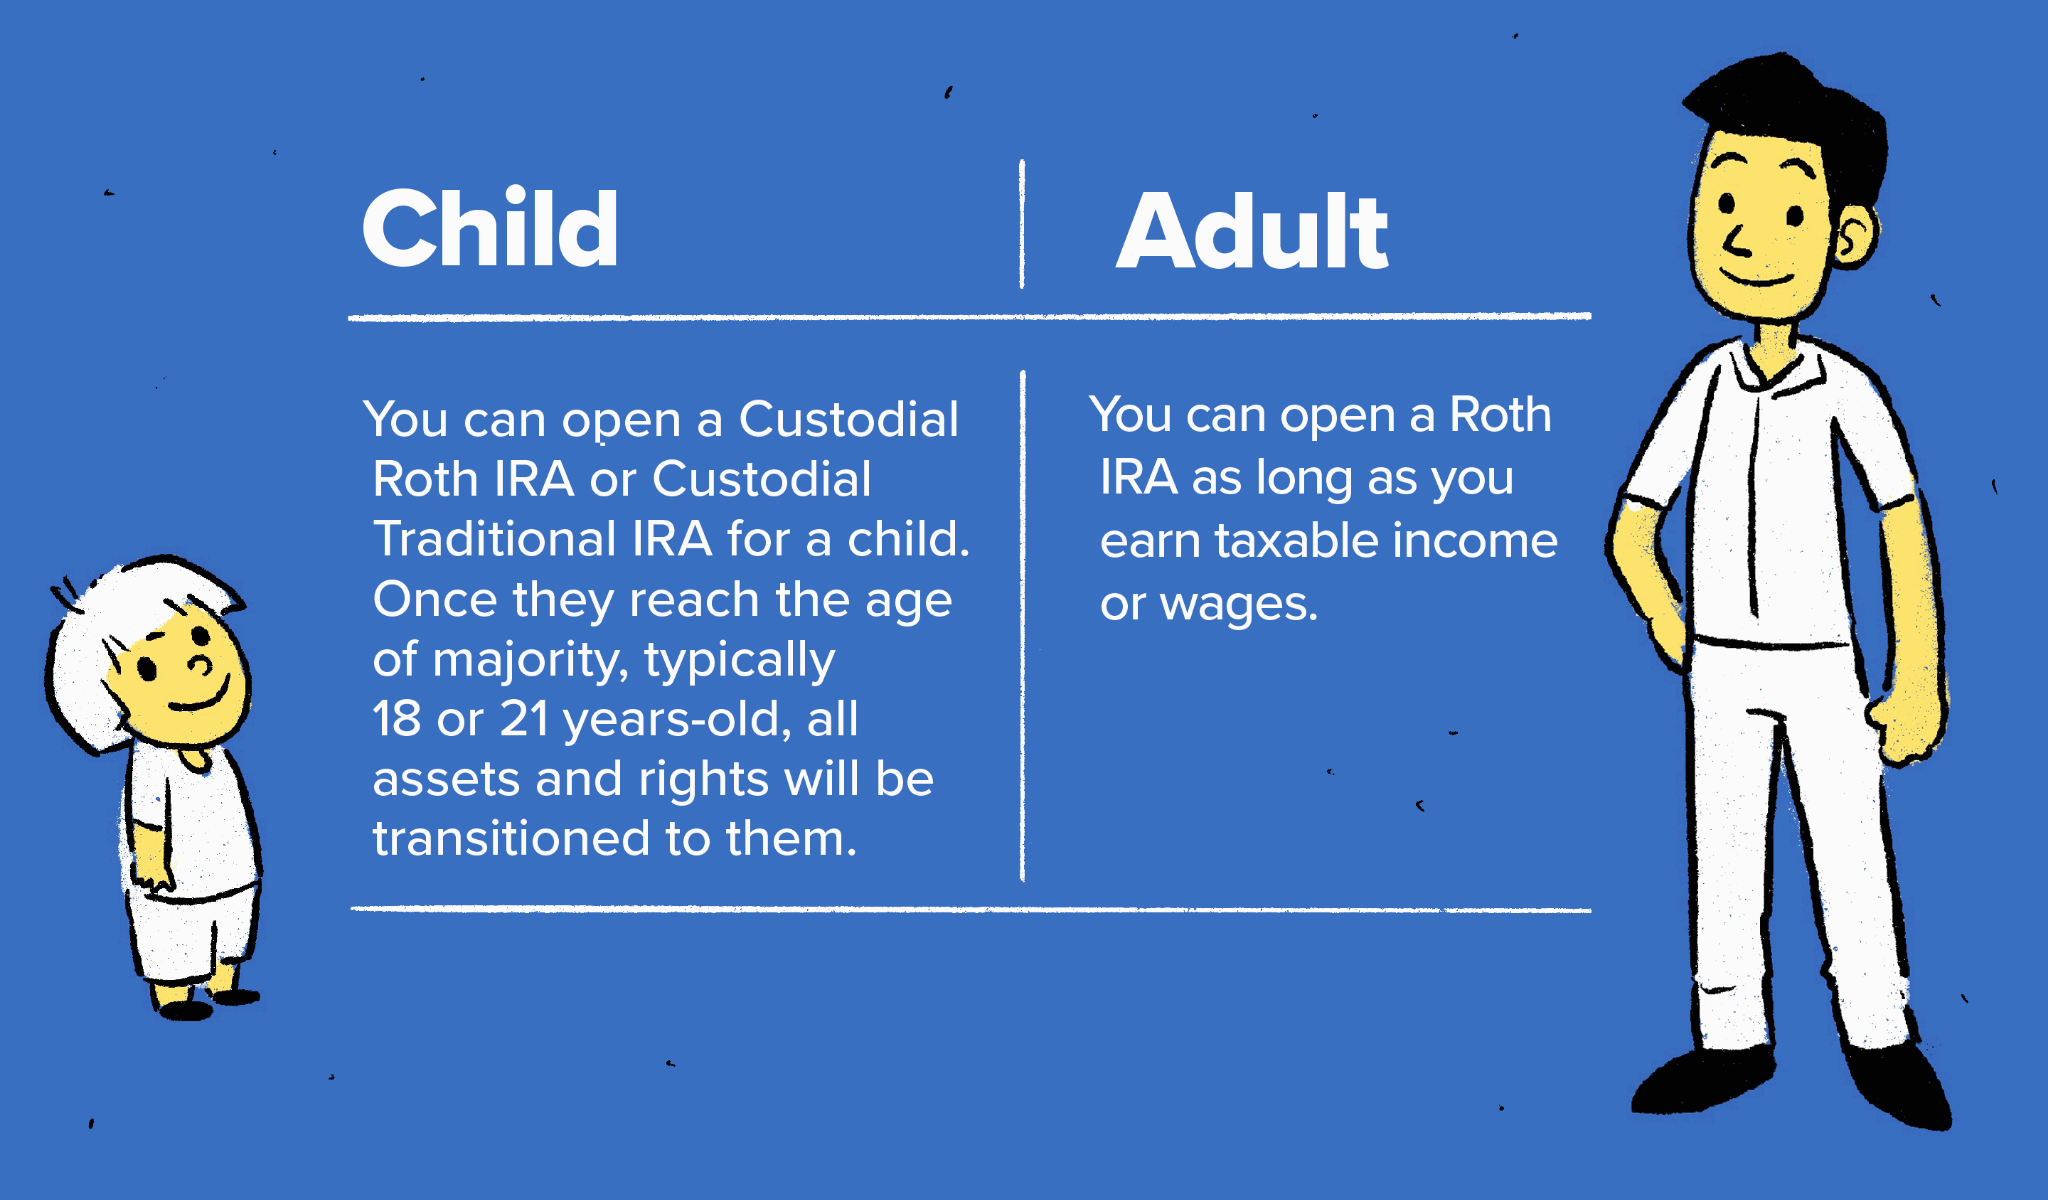 Roth IRA for a child or adult comparison